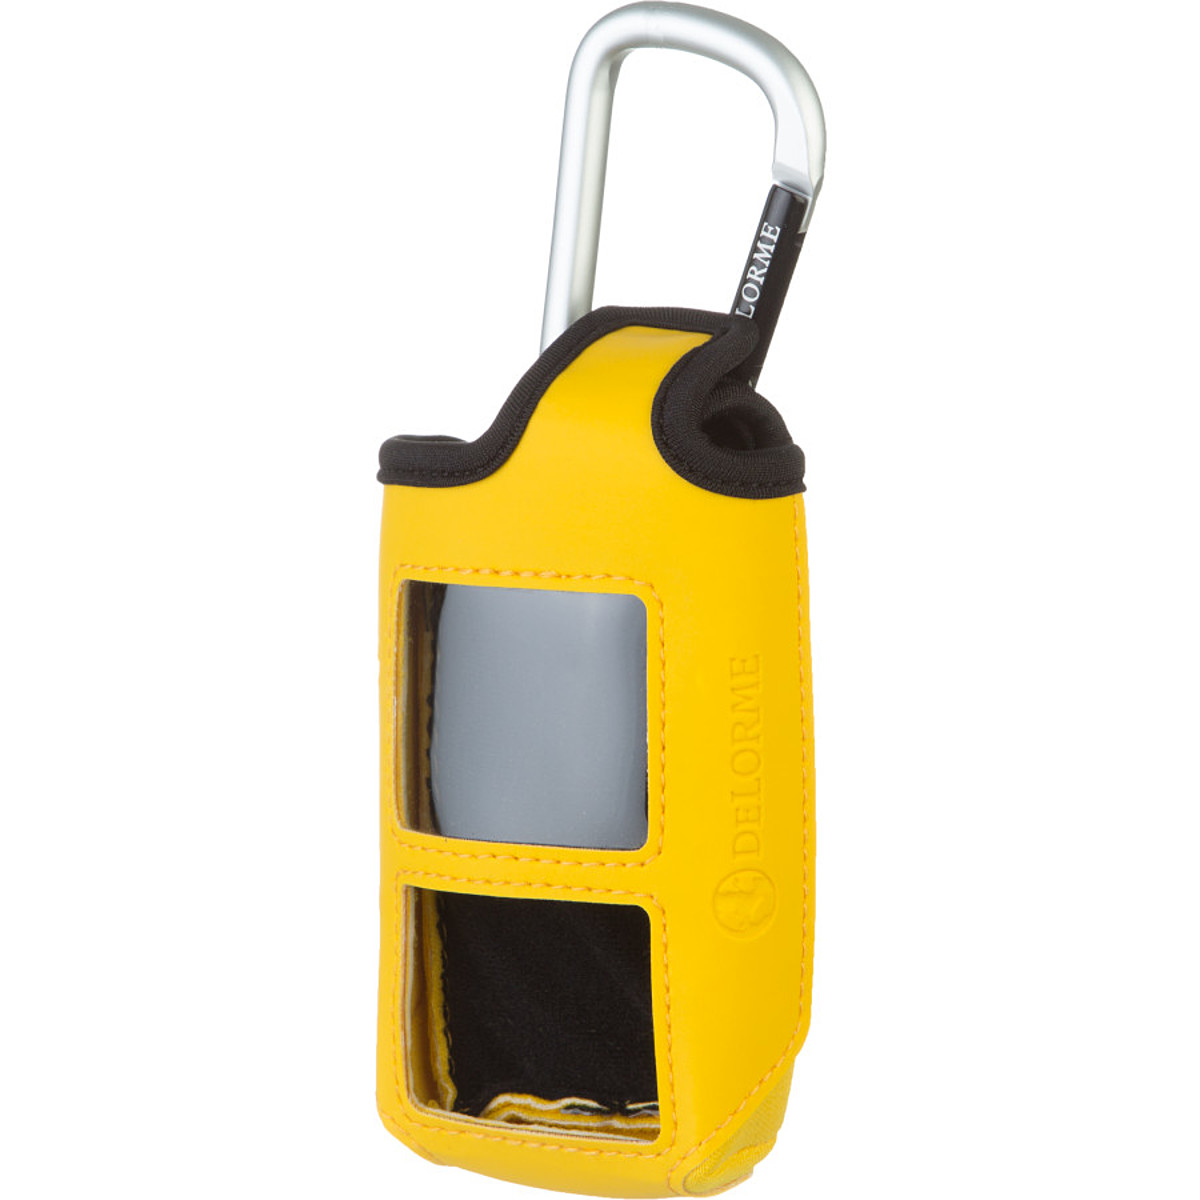 DeLorme inReach Protective and Flotation Case